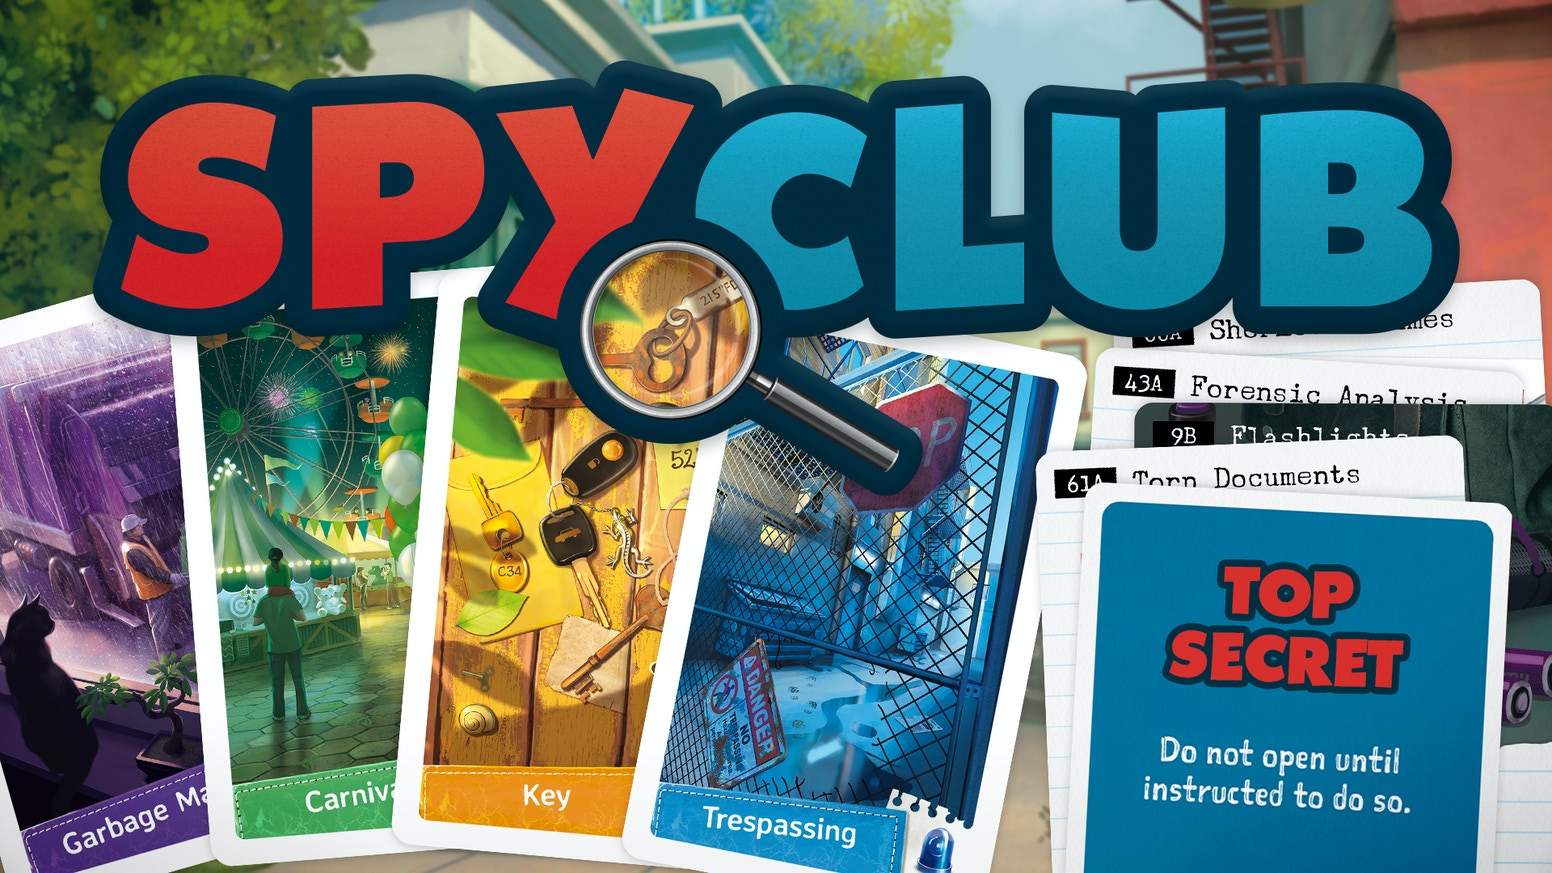 Find clues and catch the culprit like your favorite young detectives! Unlock new content that changes the game every time you play.